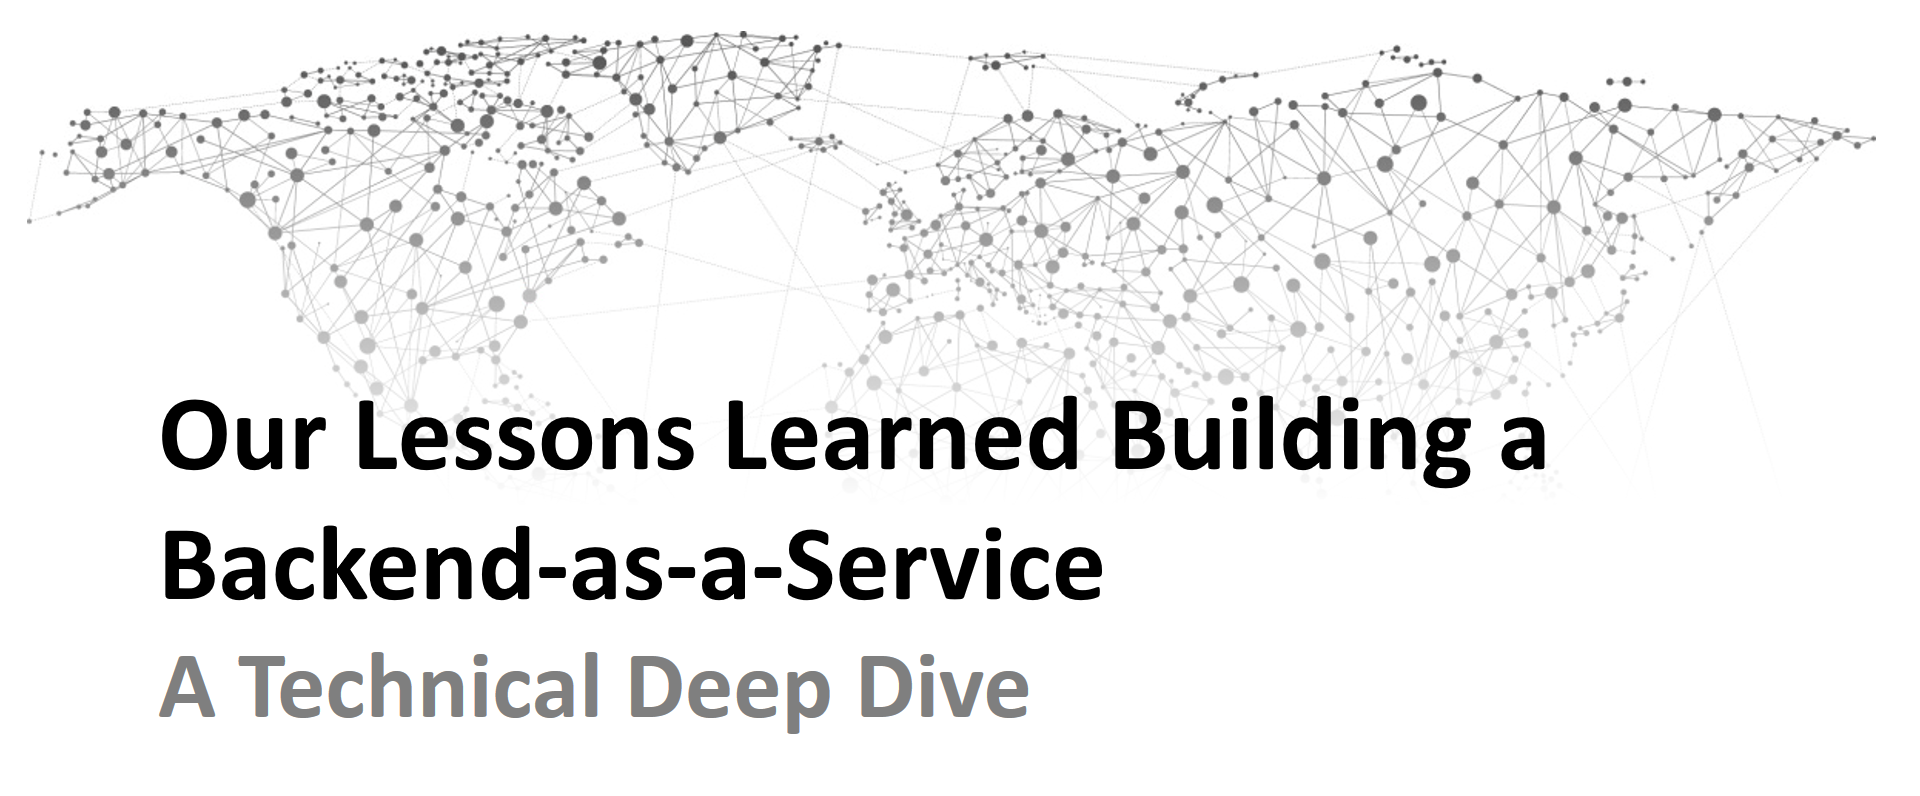 Lessons Learned Building A Backend As Service Technical Deep Dive So When I Realized You Could Build The Most Basic Of Logic Gates Not Our Platform And Therefore Would Love To Share How Everything Works At Level This Post Is Combined Writeup Different Talks We Gave